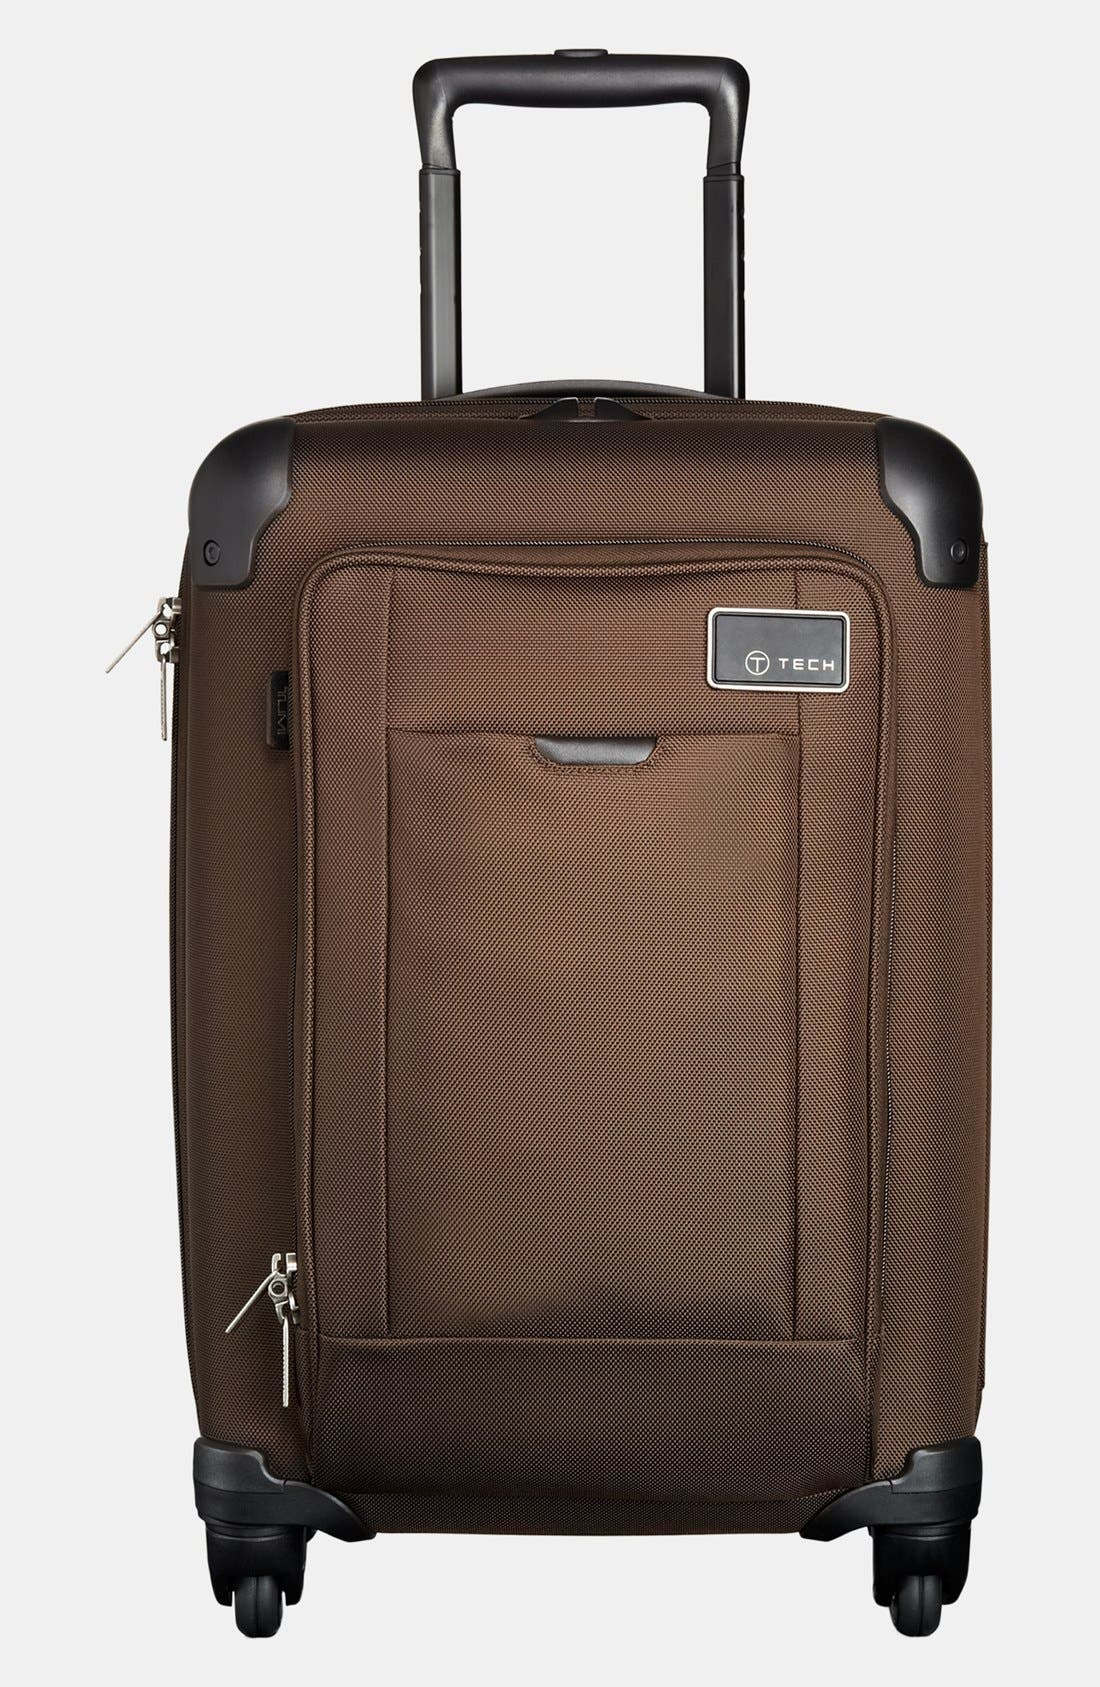 Alternate Image 1 Selected - Tumi 'T-Tech Network' Lightweight Wheeled International Carry On (22 Inch)